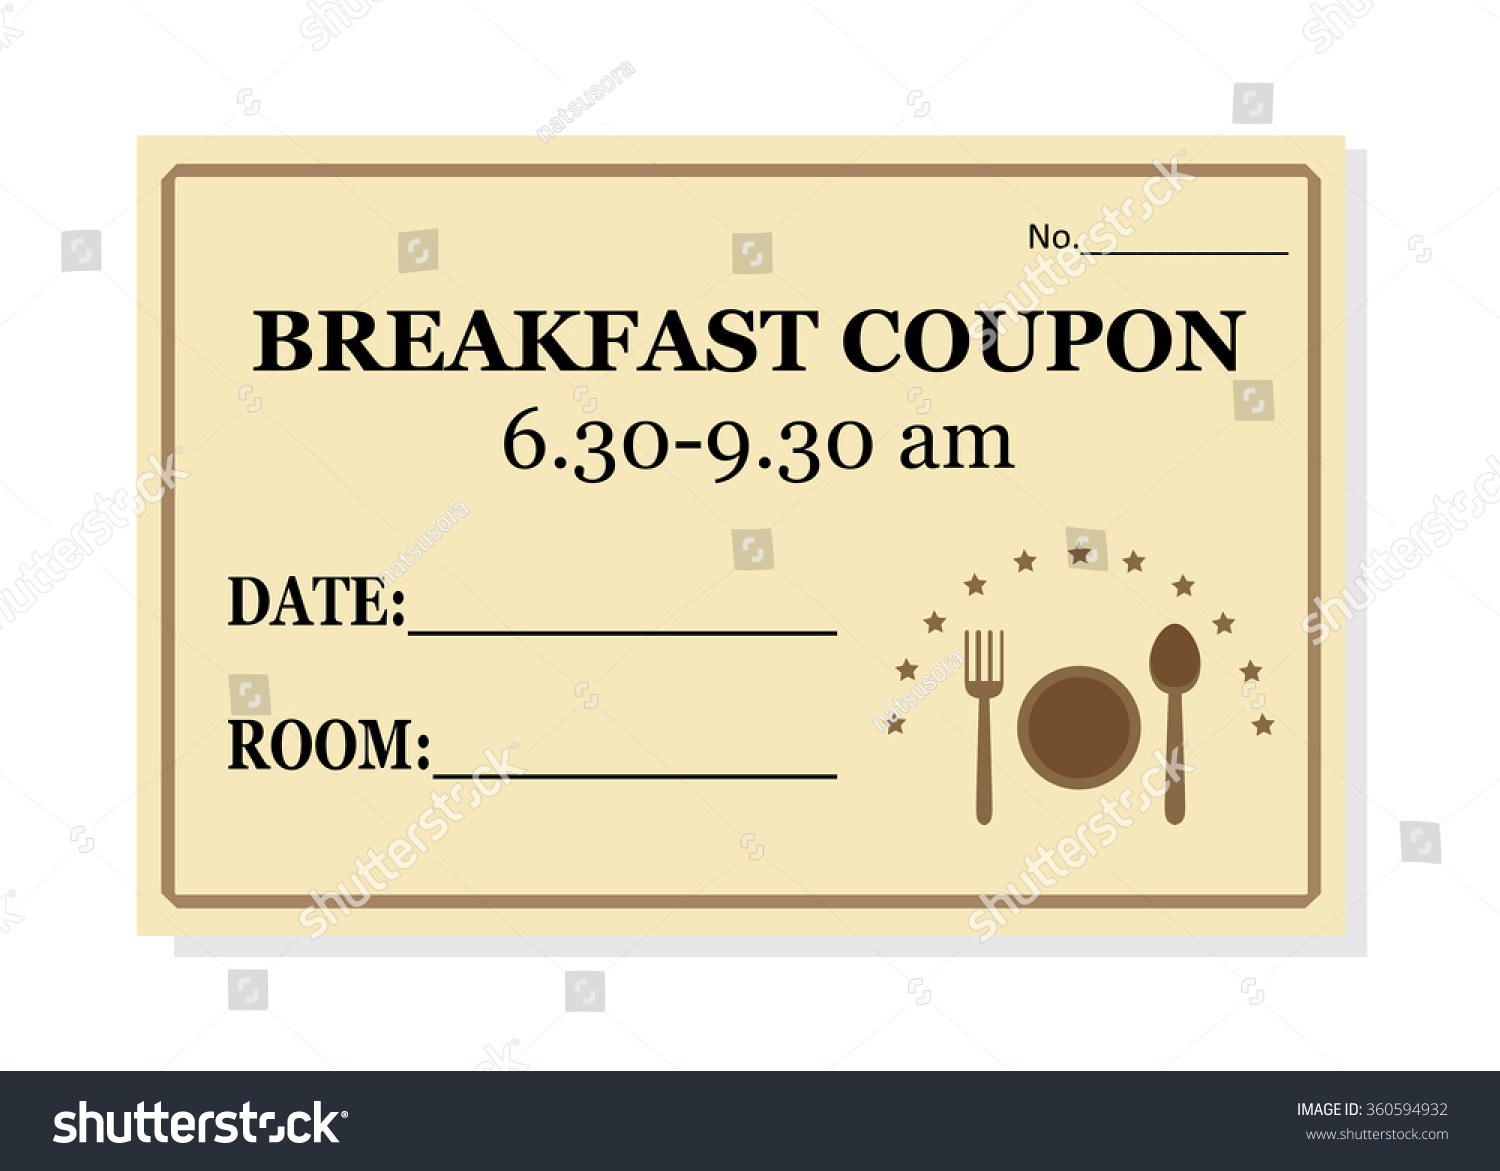 breakfast coupon template hotel isolated on stock vector 360594932 breakfast coupon template for hotel isolated on white background vector